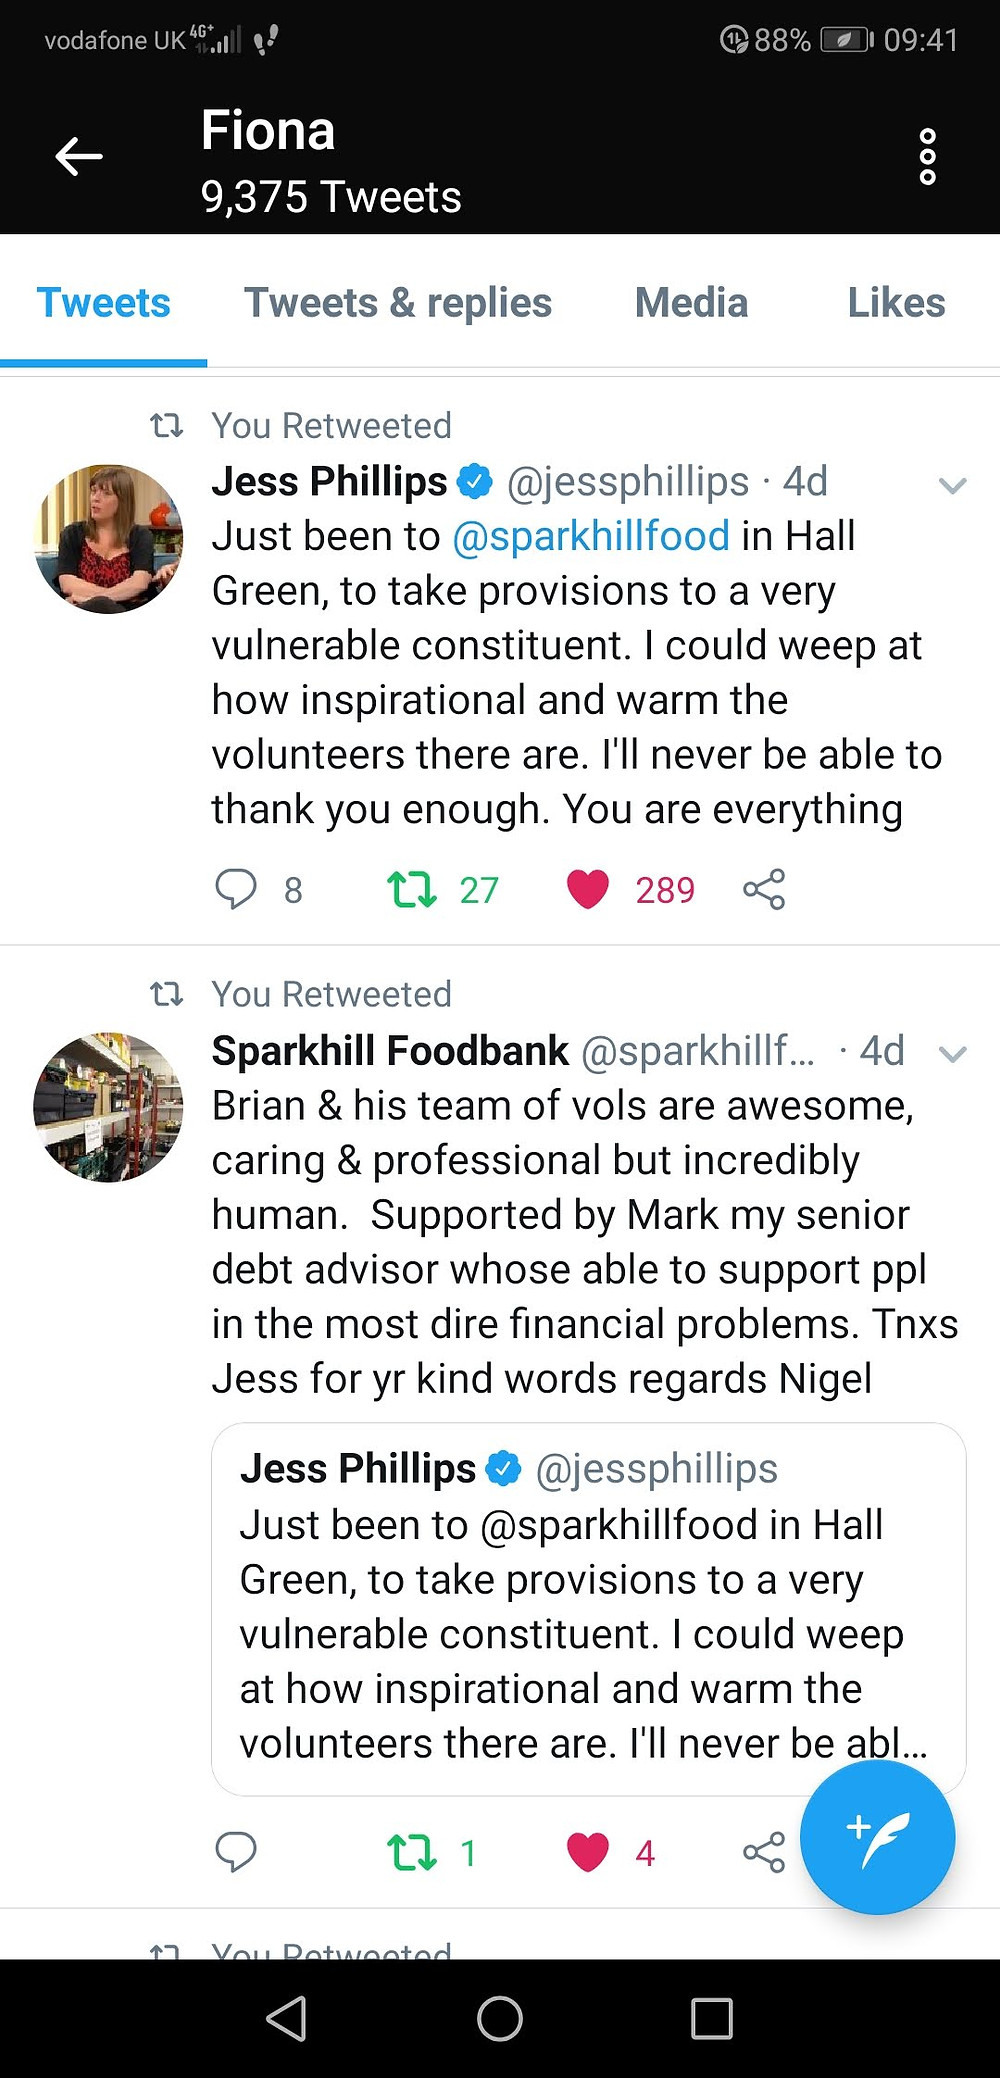 """Jess Phillips' tweet reads: Just been to Sparkhill Foodbank in Hall Green to take provisions to a very vulnerable constituent.  I could weep at how inspirational and warm the volunteers there are.  I'll never be able to thank you enough. You are everything."""""""